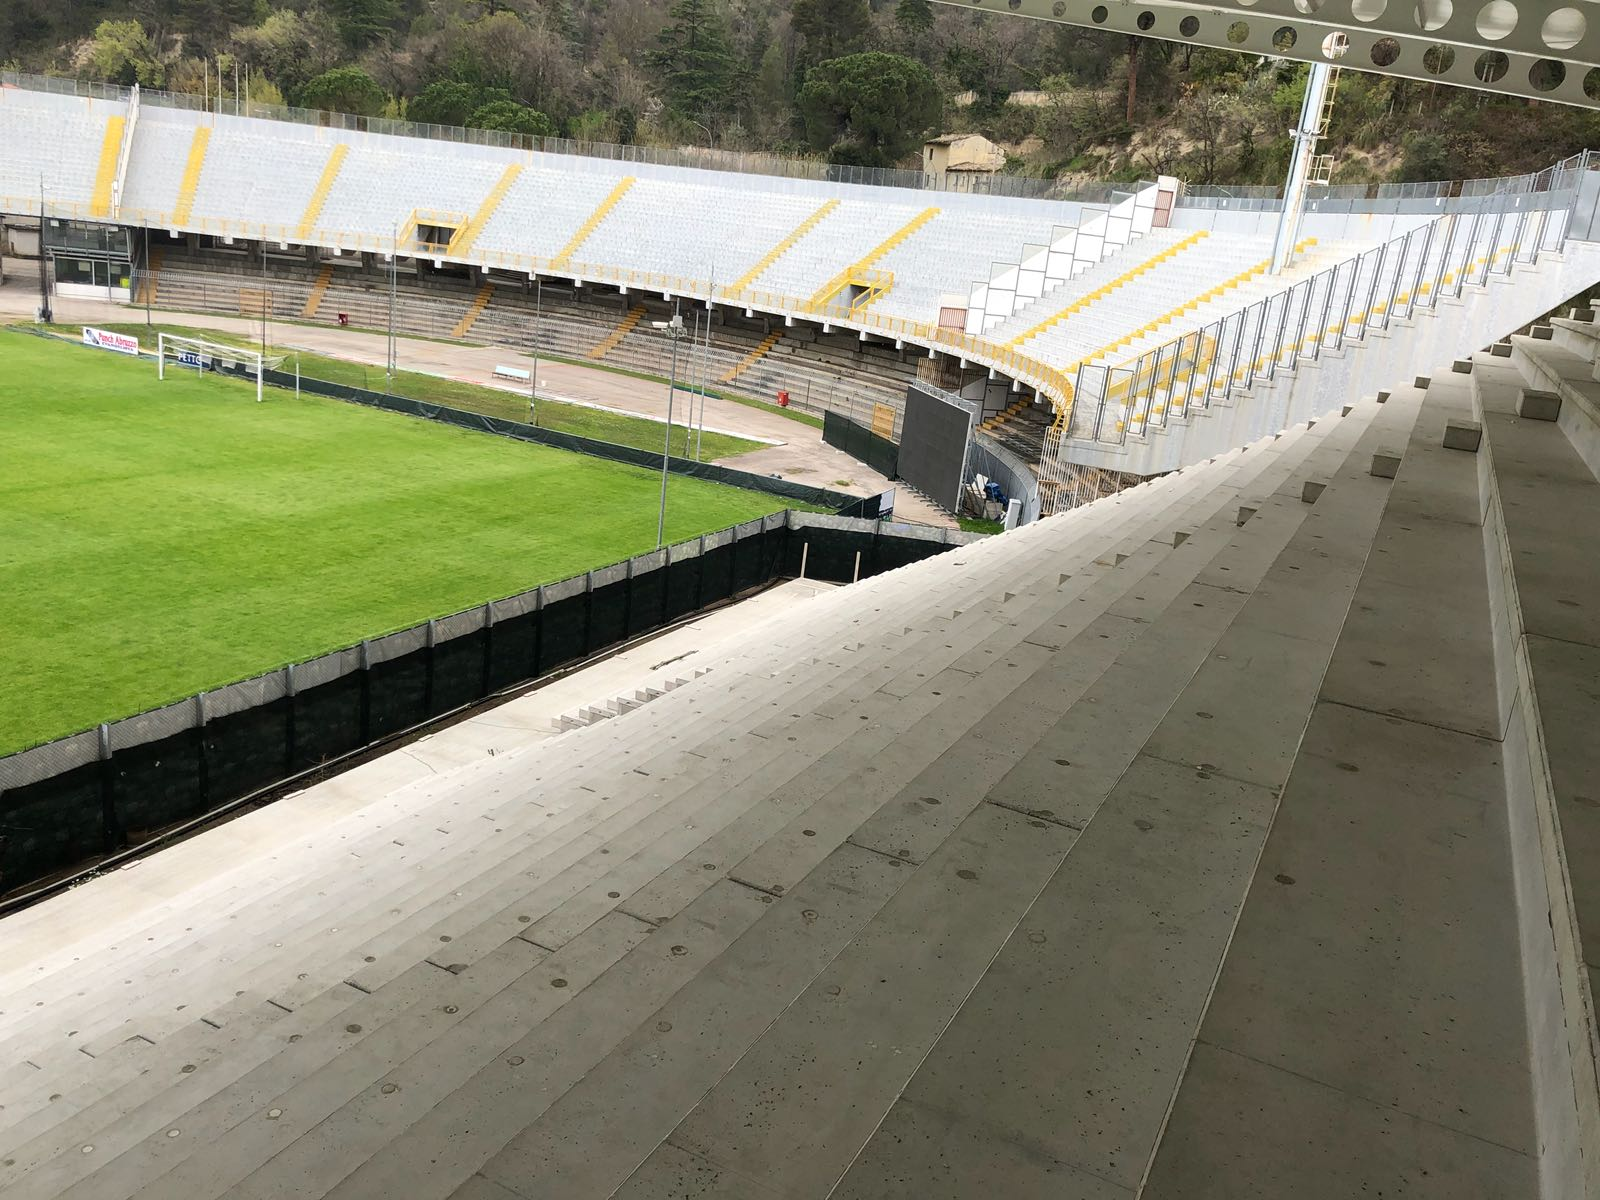 tribuna stadio ascoli 2018-09-08 at 17.45.14